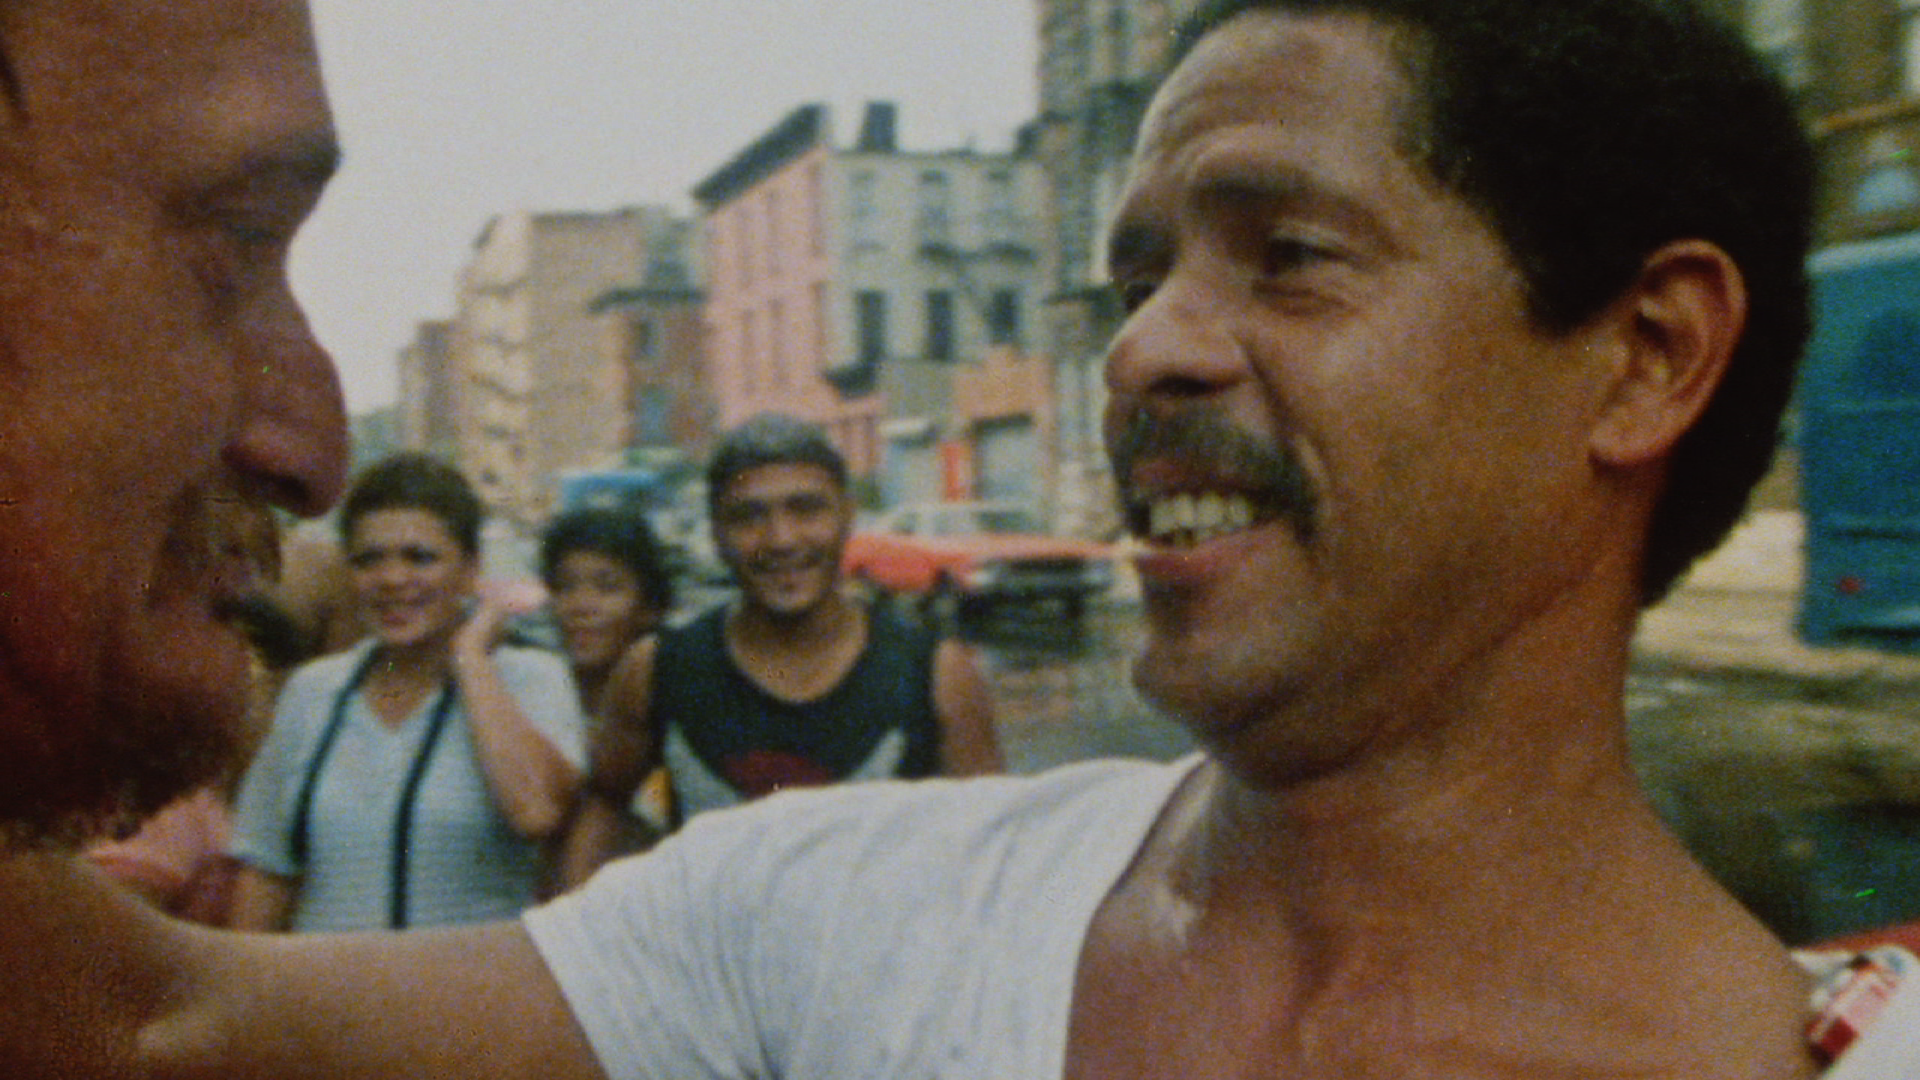 Cuso Soto, 1984. A Still from the documentary, Los Sures.